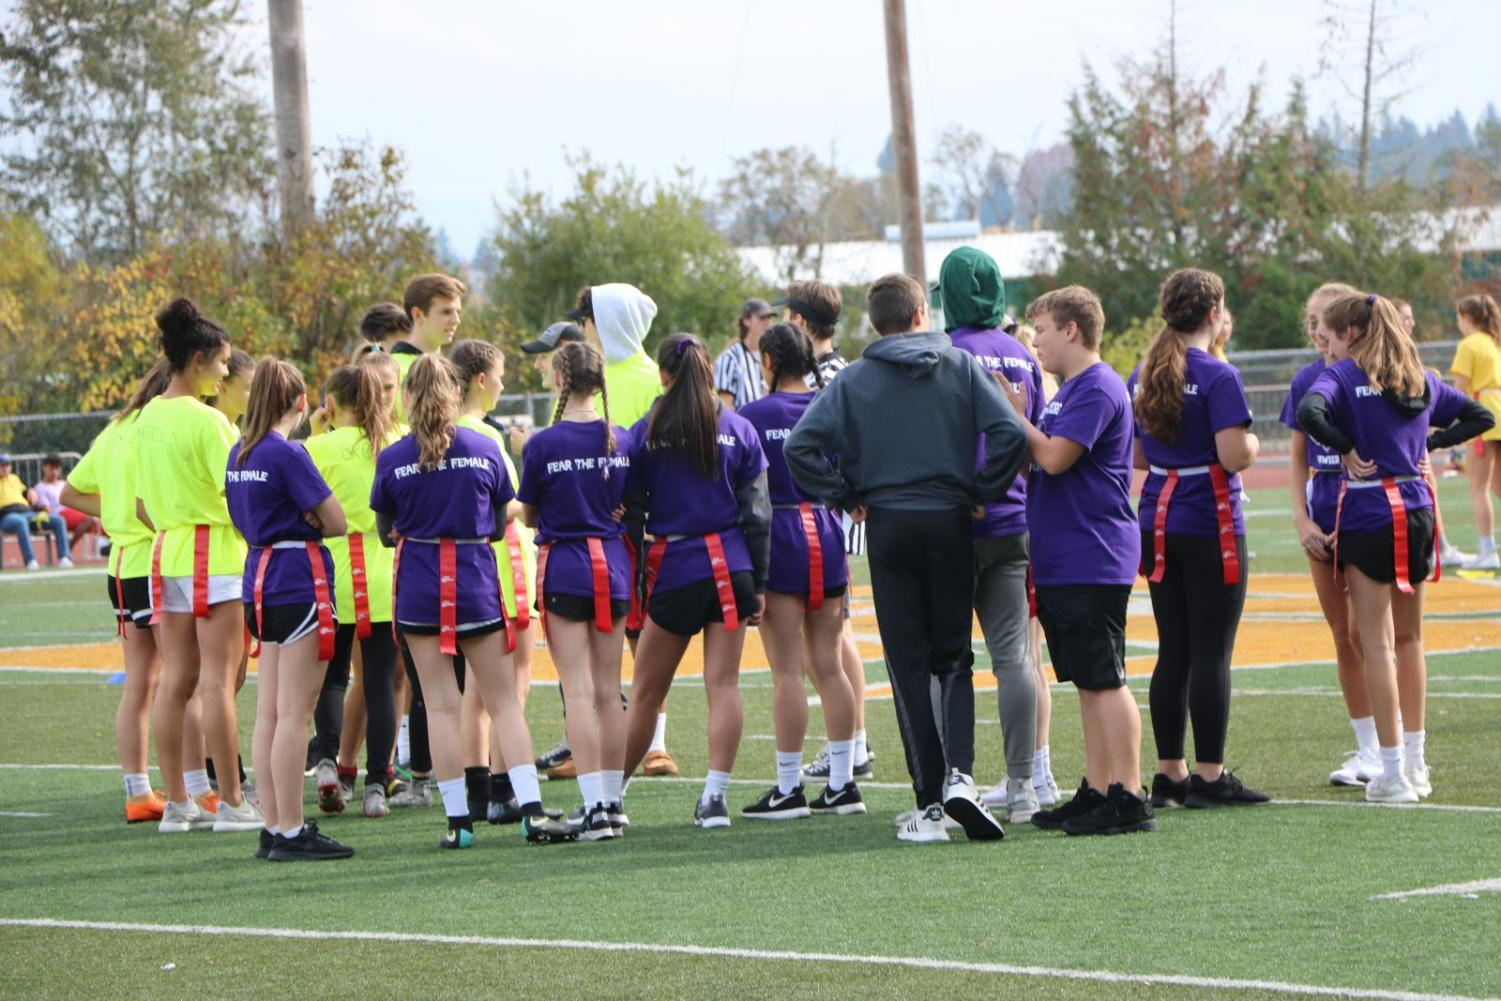 Team+Purple+and+team+Neon+Green+waiting+to+start+their+game.+The+coaches+can+be+seen+in+the+background%2C+discussing+technicalities.